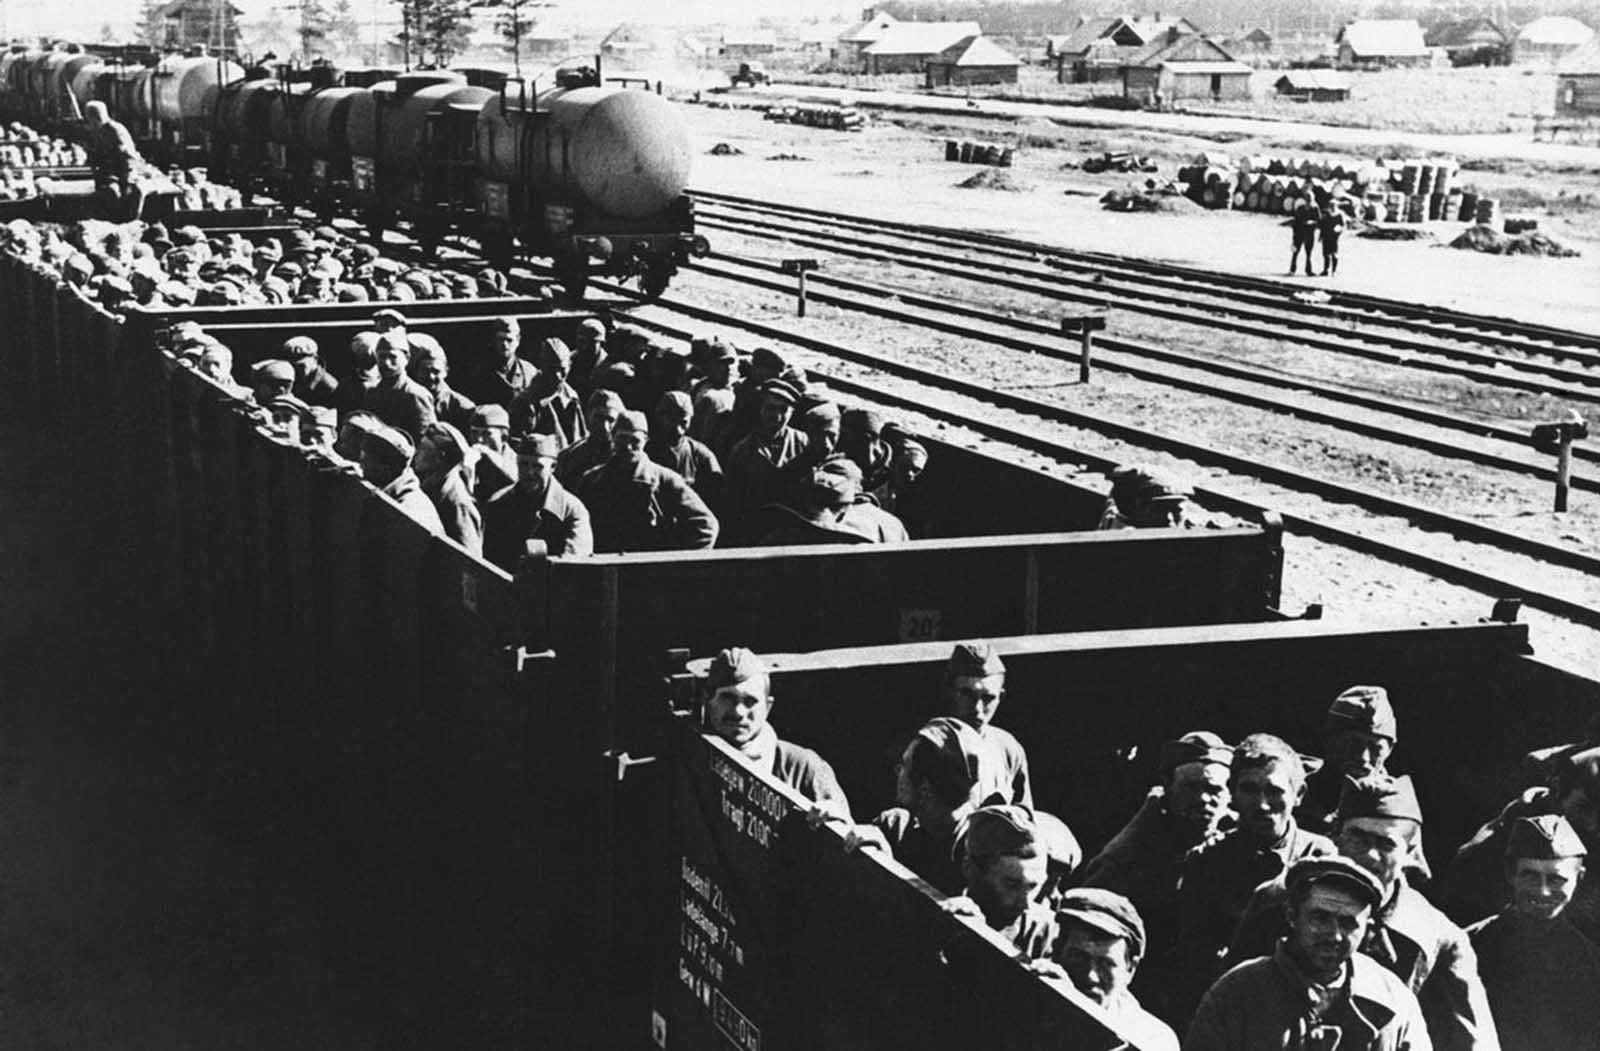 This trainload of men was described by German sources as Soviet prisoners en route to Germany, on October 3, 1941. Several million Soviet soldiers were eventually sent to German prison camps, the majority of whom never returned alive.